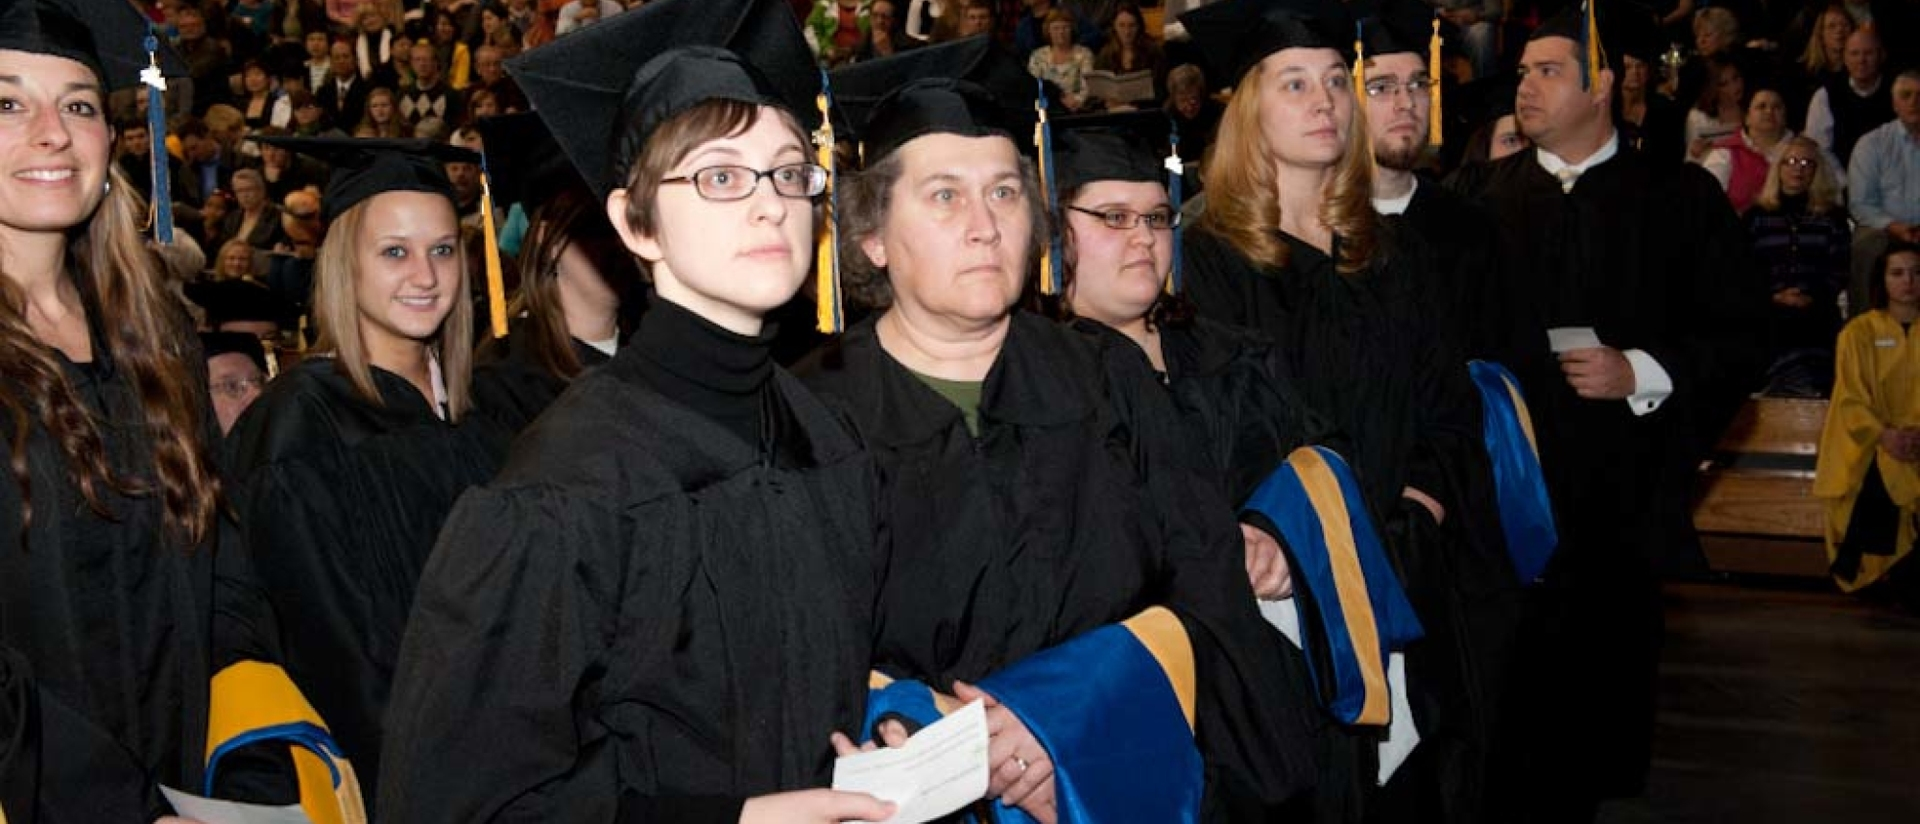 Graduate students at commencement